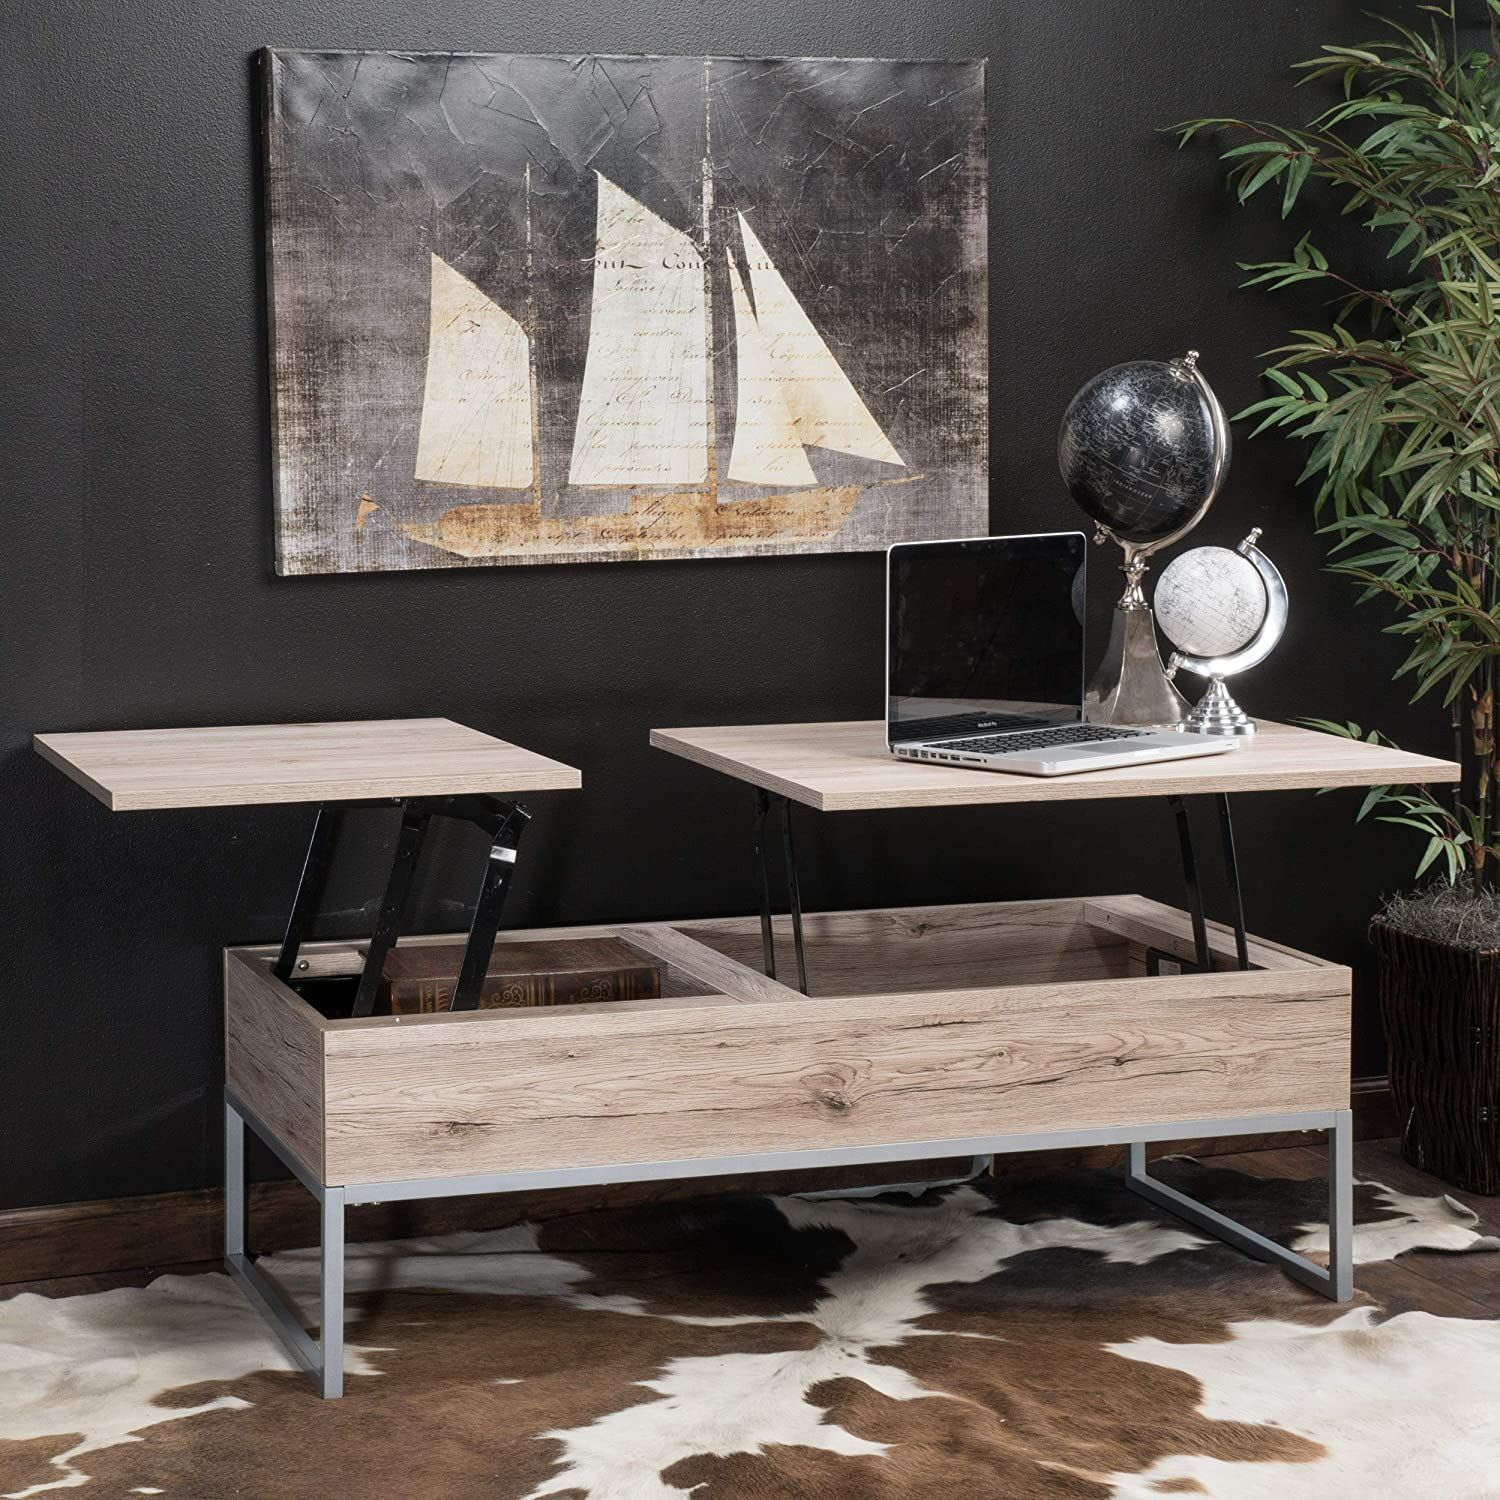 Christopher Knight Home Cerise Sandy Brown Wood Lift Top Storage Coffee Table Coffee Table Lift Top Coffee Table Modern Table Design [ 1500 x 1500 Pixel ]